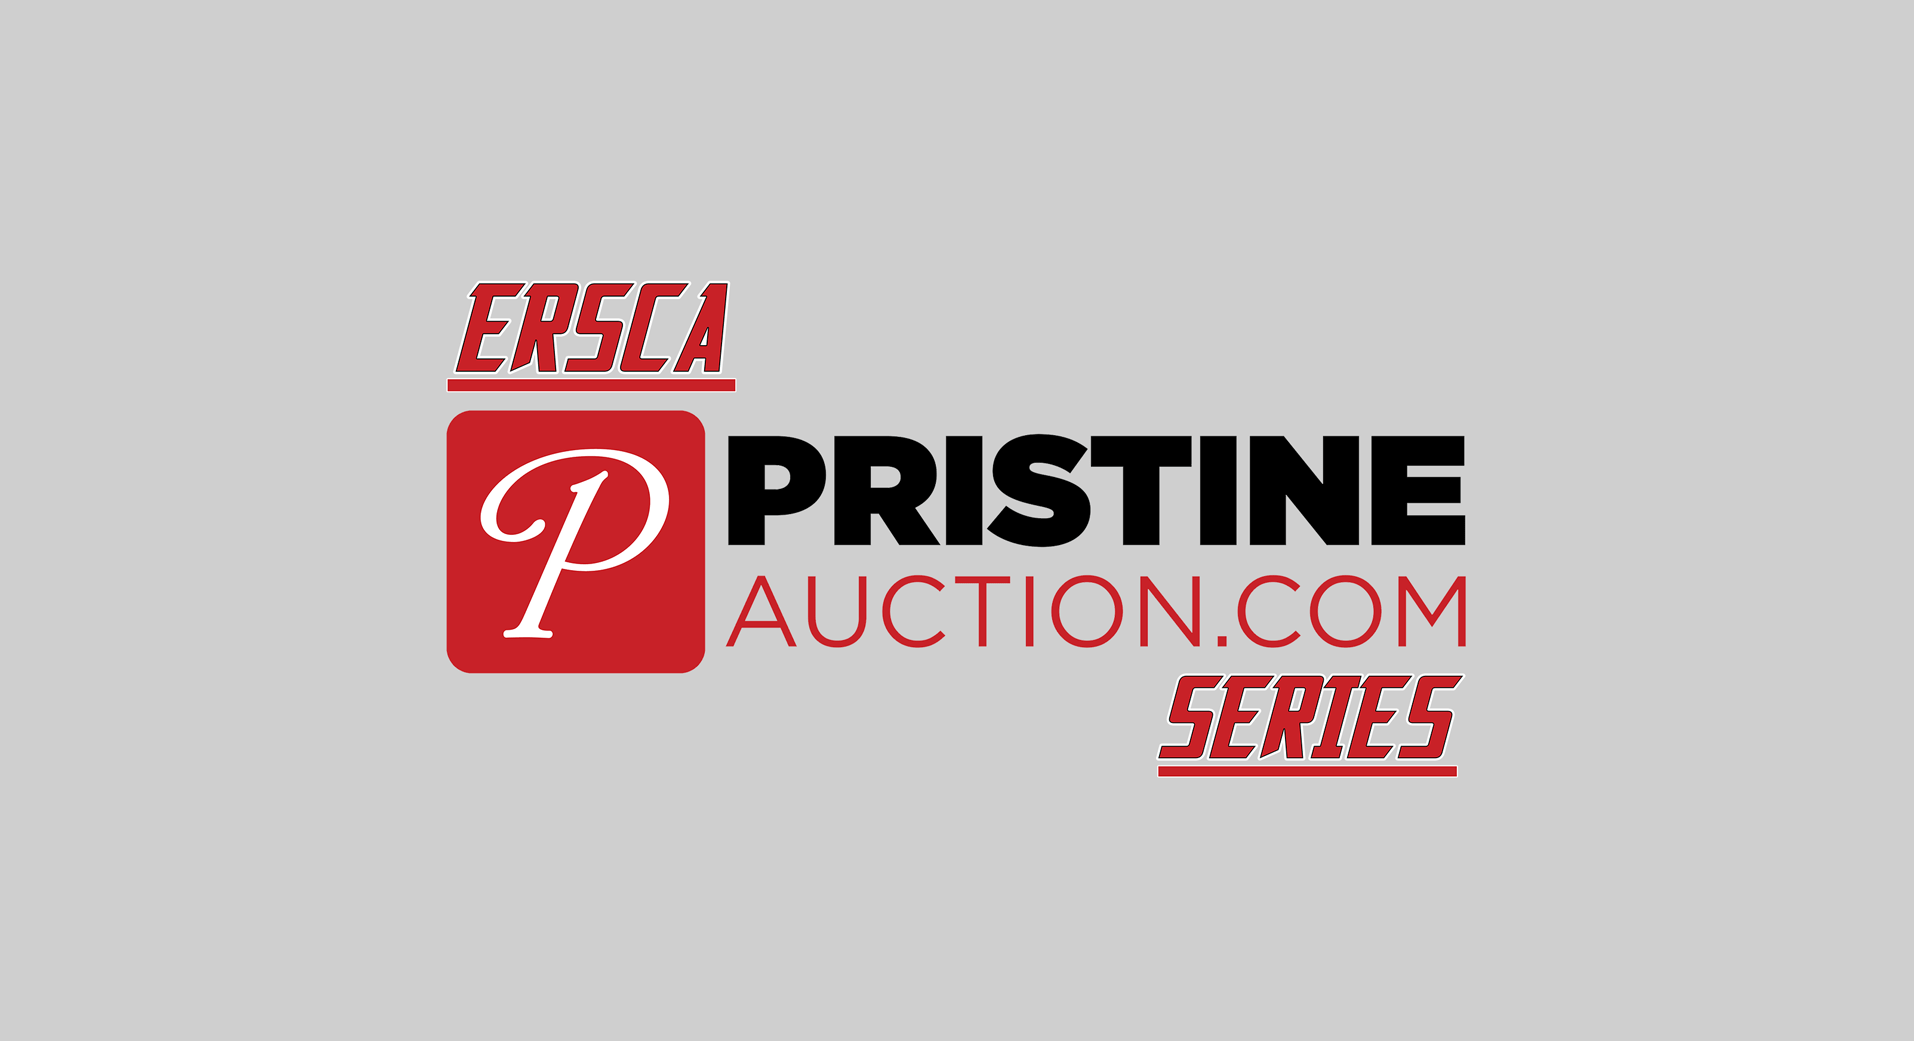 ERSCA Pristine Auction.com Series to Open Season with Belly Up Sports 250